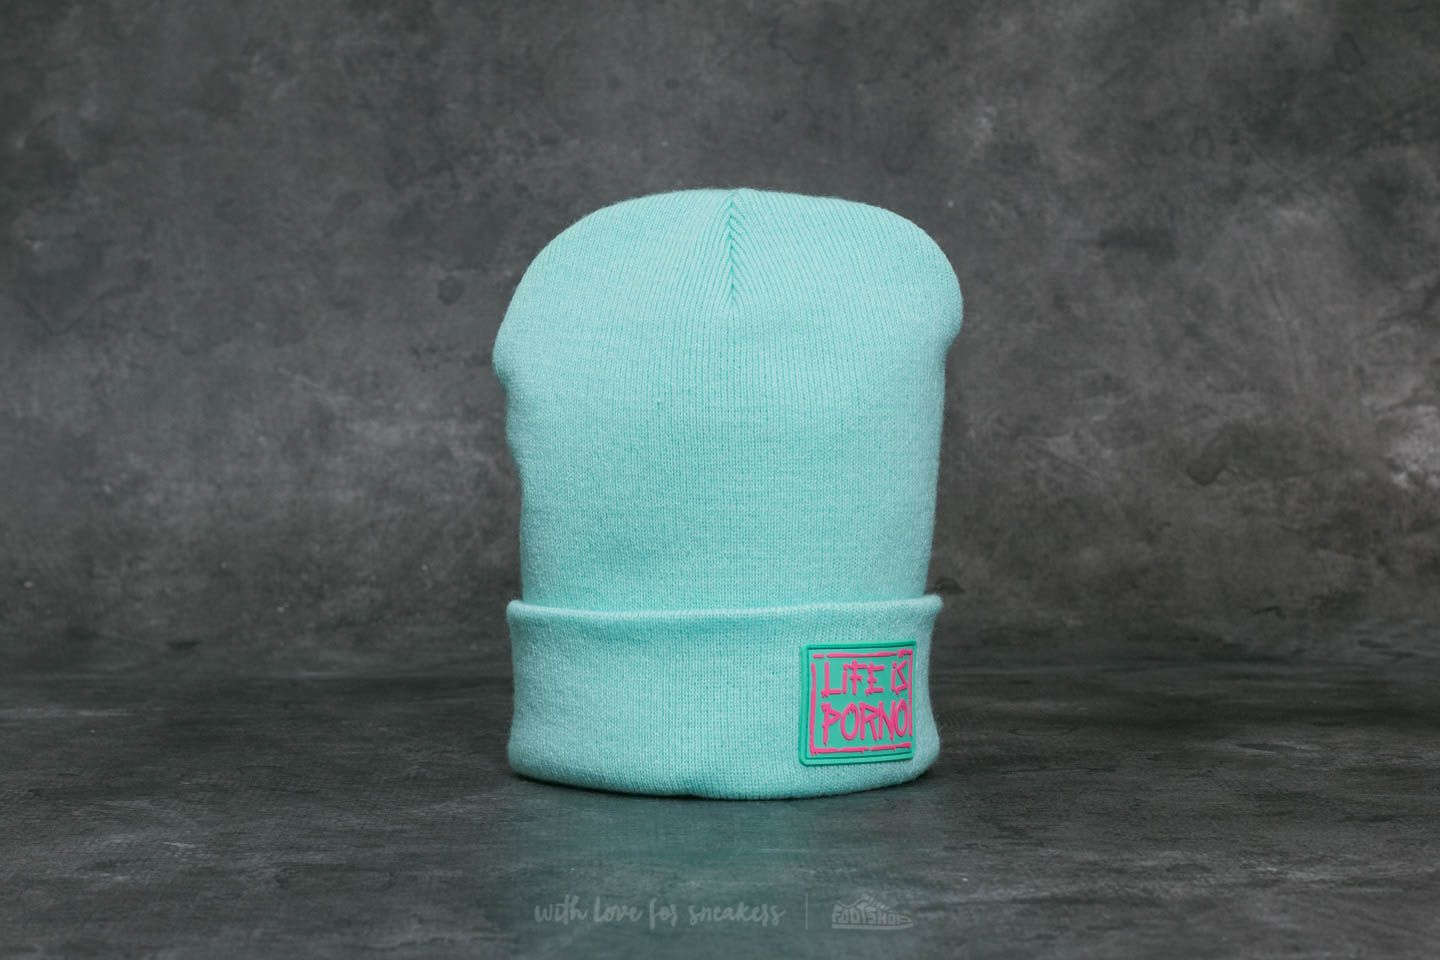 Life is Porno Taxi Beanie Turquoise